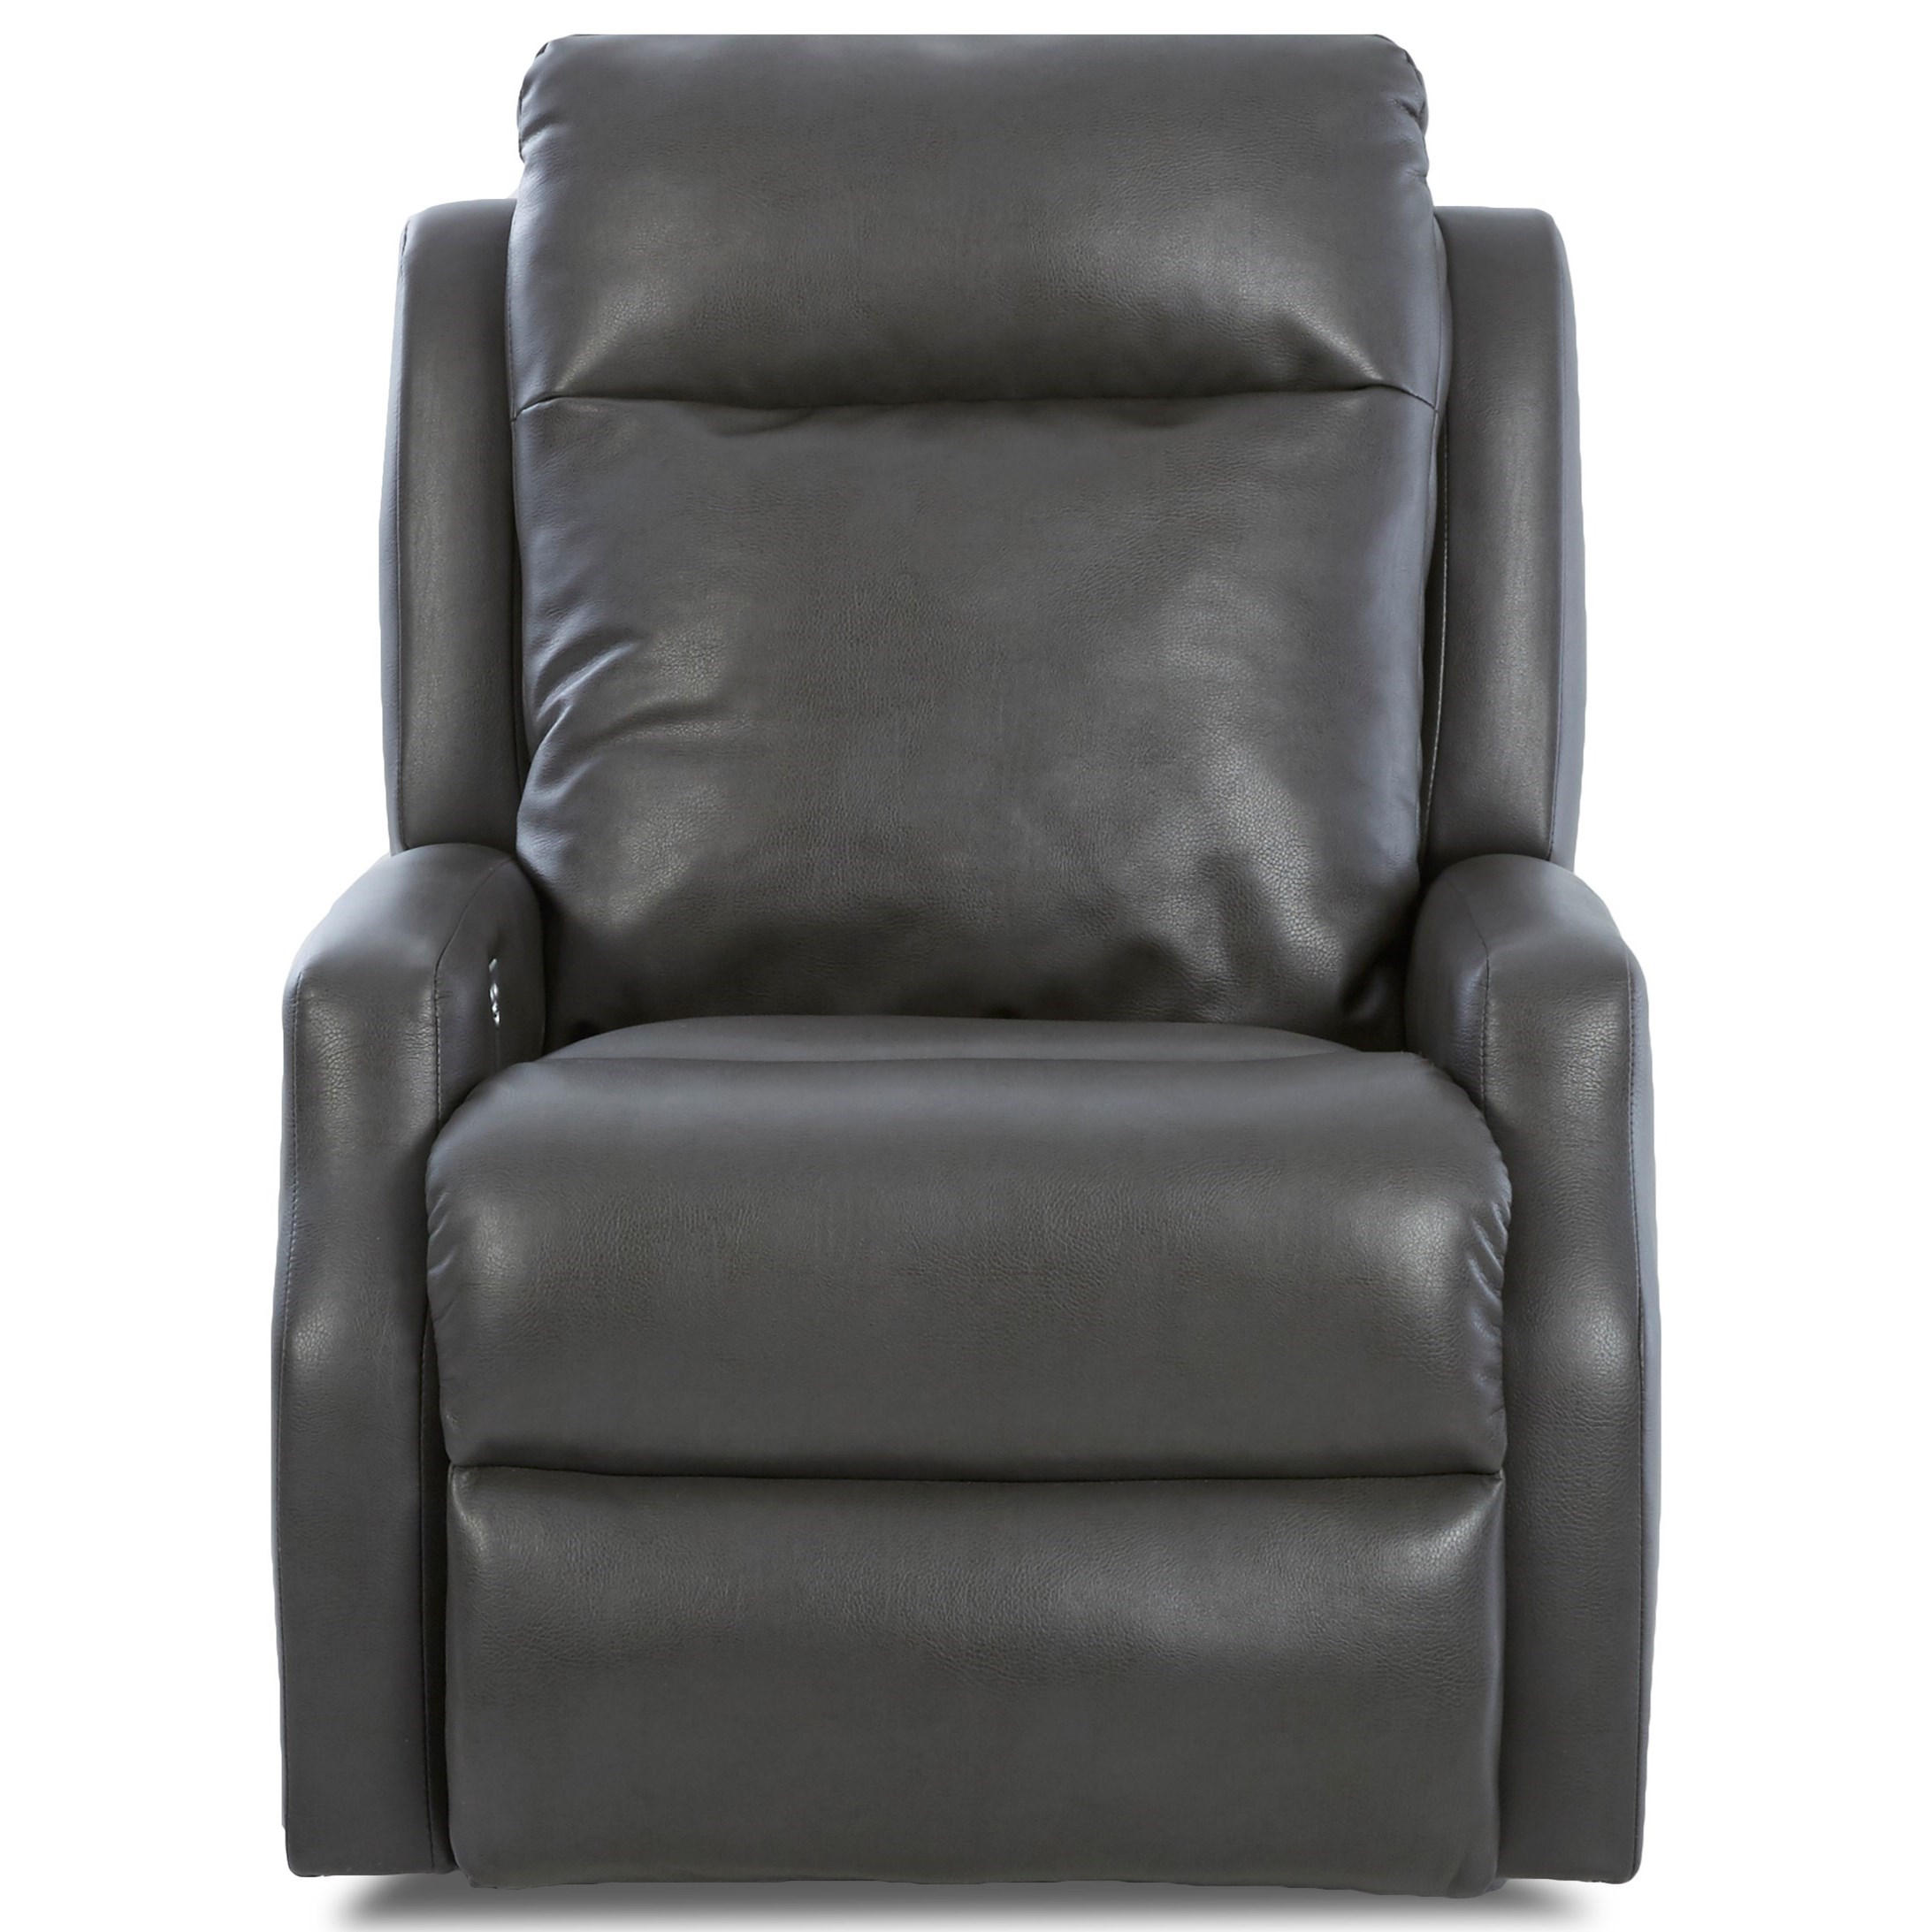 Mirra Power Rocking Reclining Chair by Klaussner at Johnny Janosik